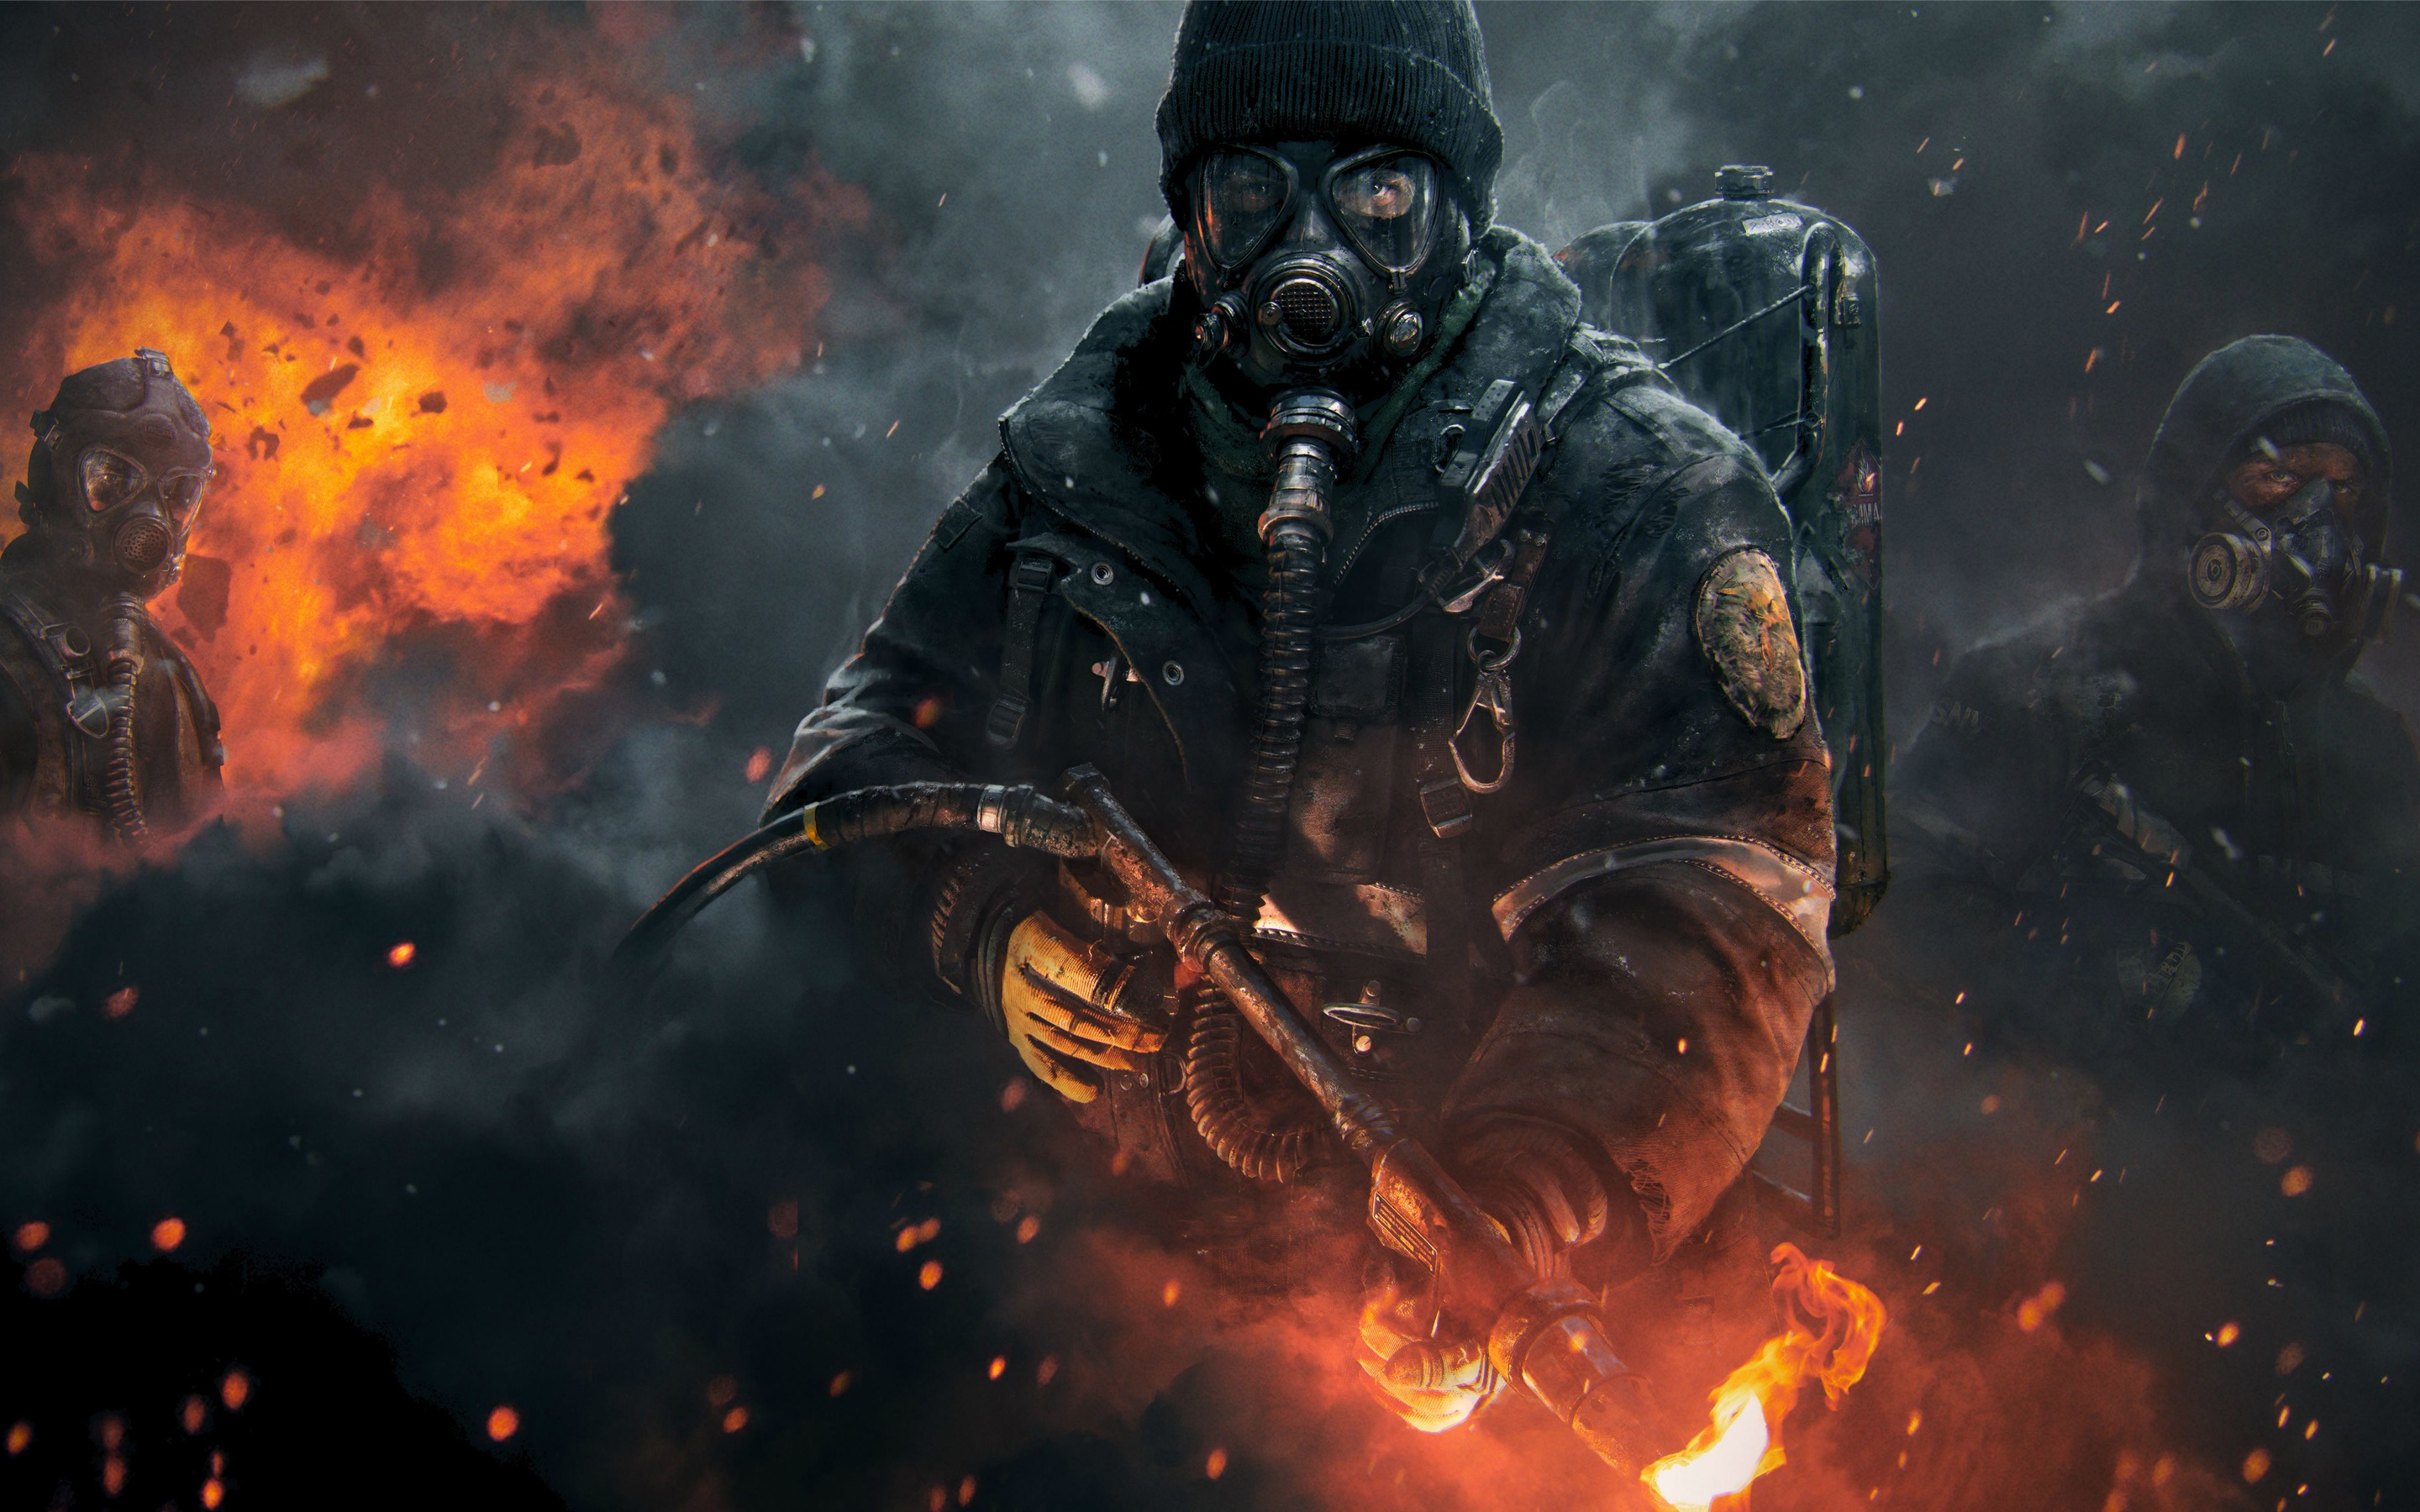 Tom Clancys The Division Wallpapers In Jpg Format For Free Download